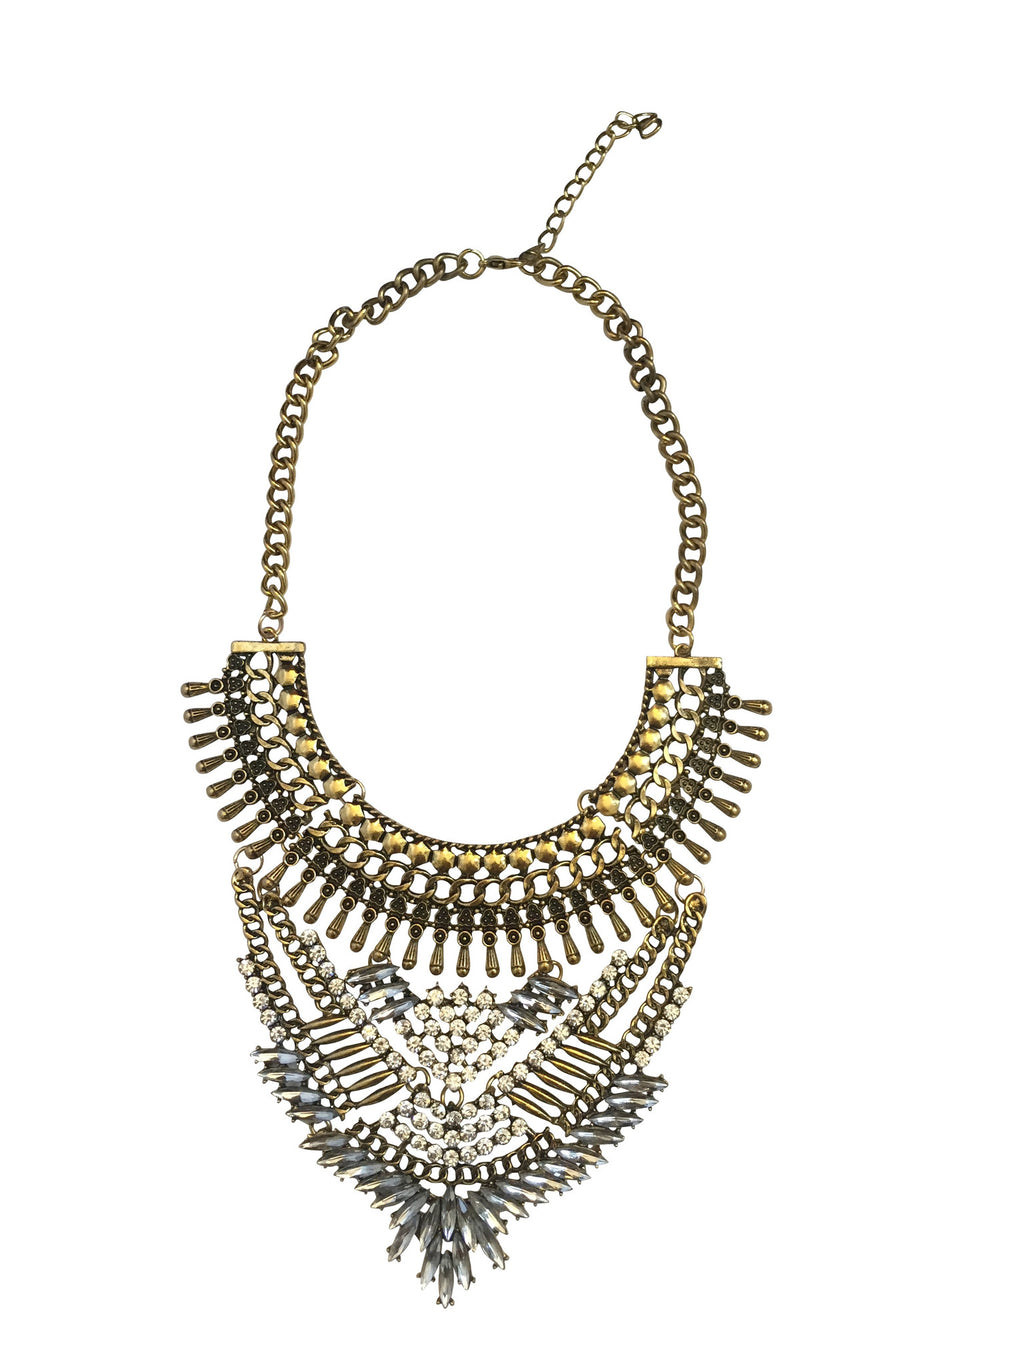 Azteck Gold Statement Necklace